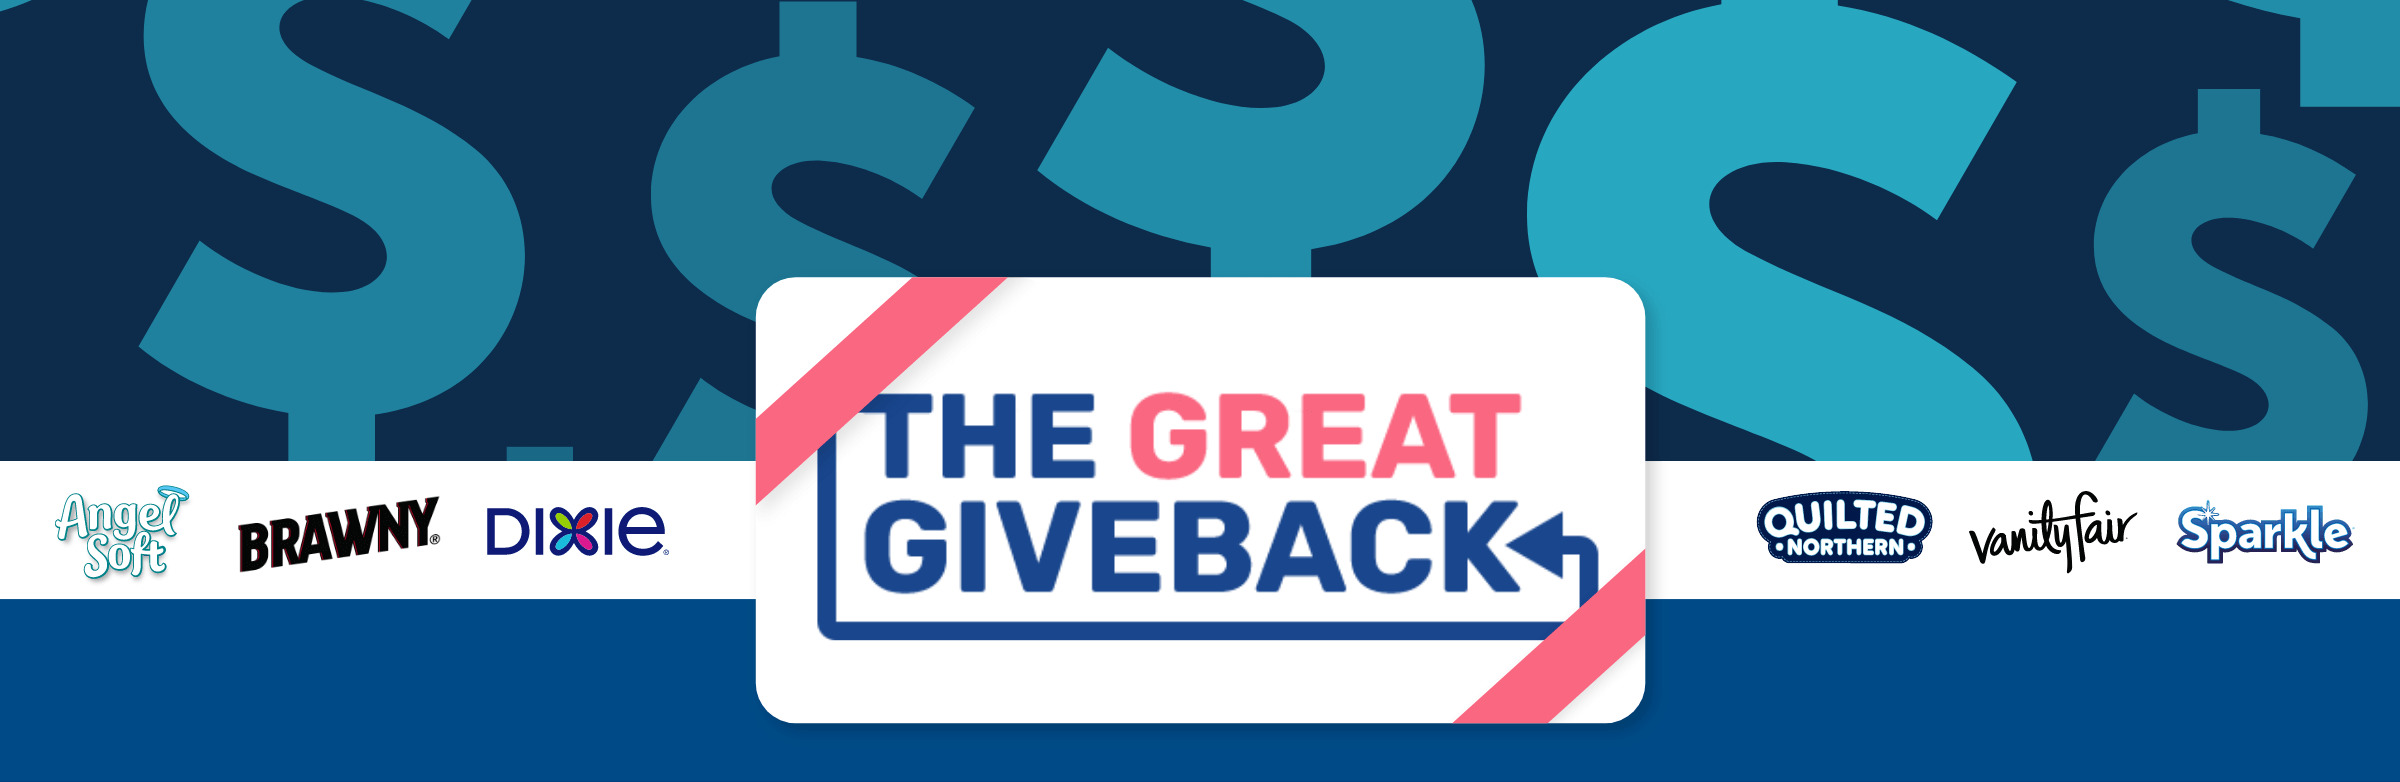 Georgia-Pacific Great Giveback Sweepstakes